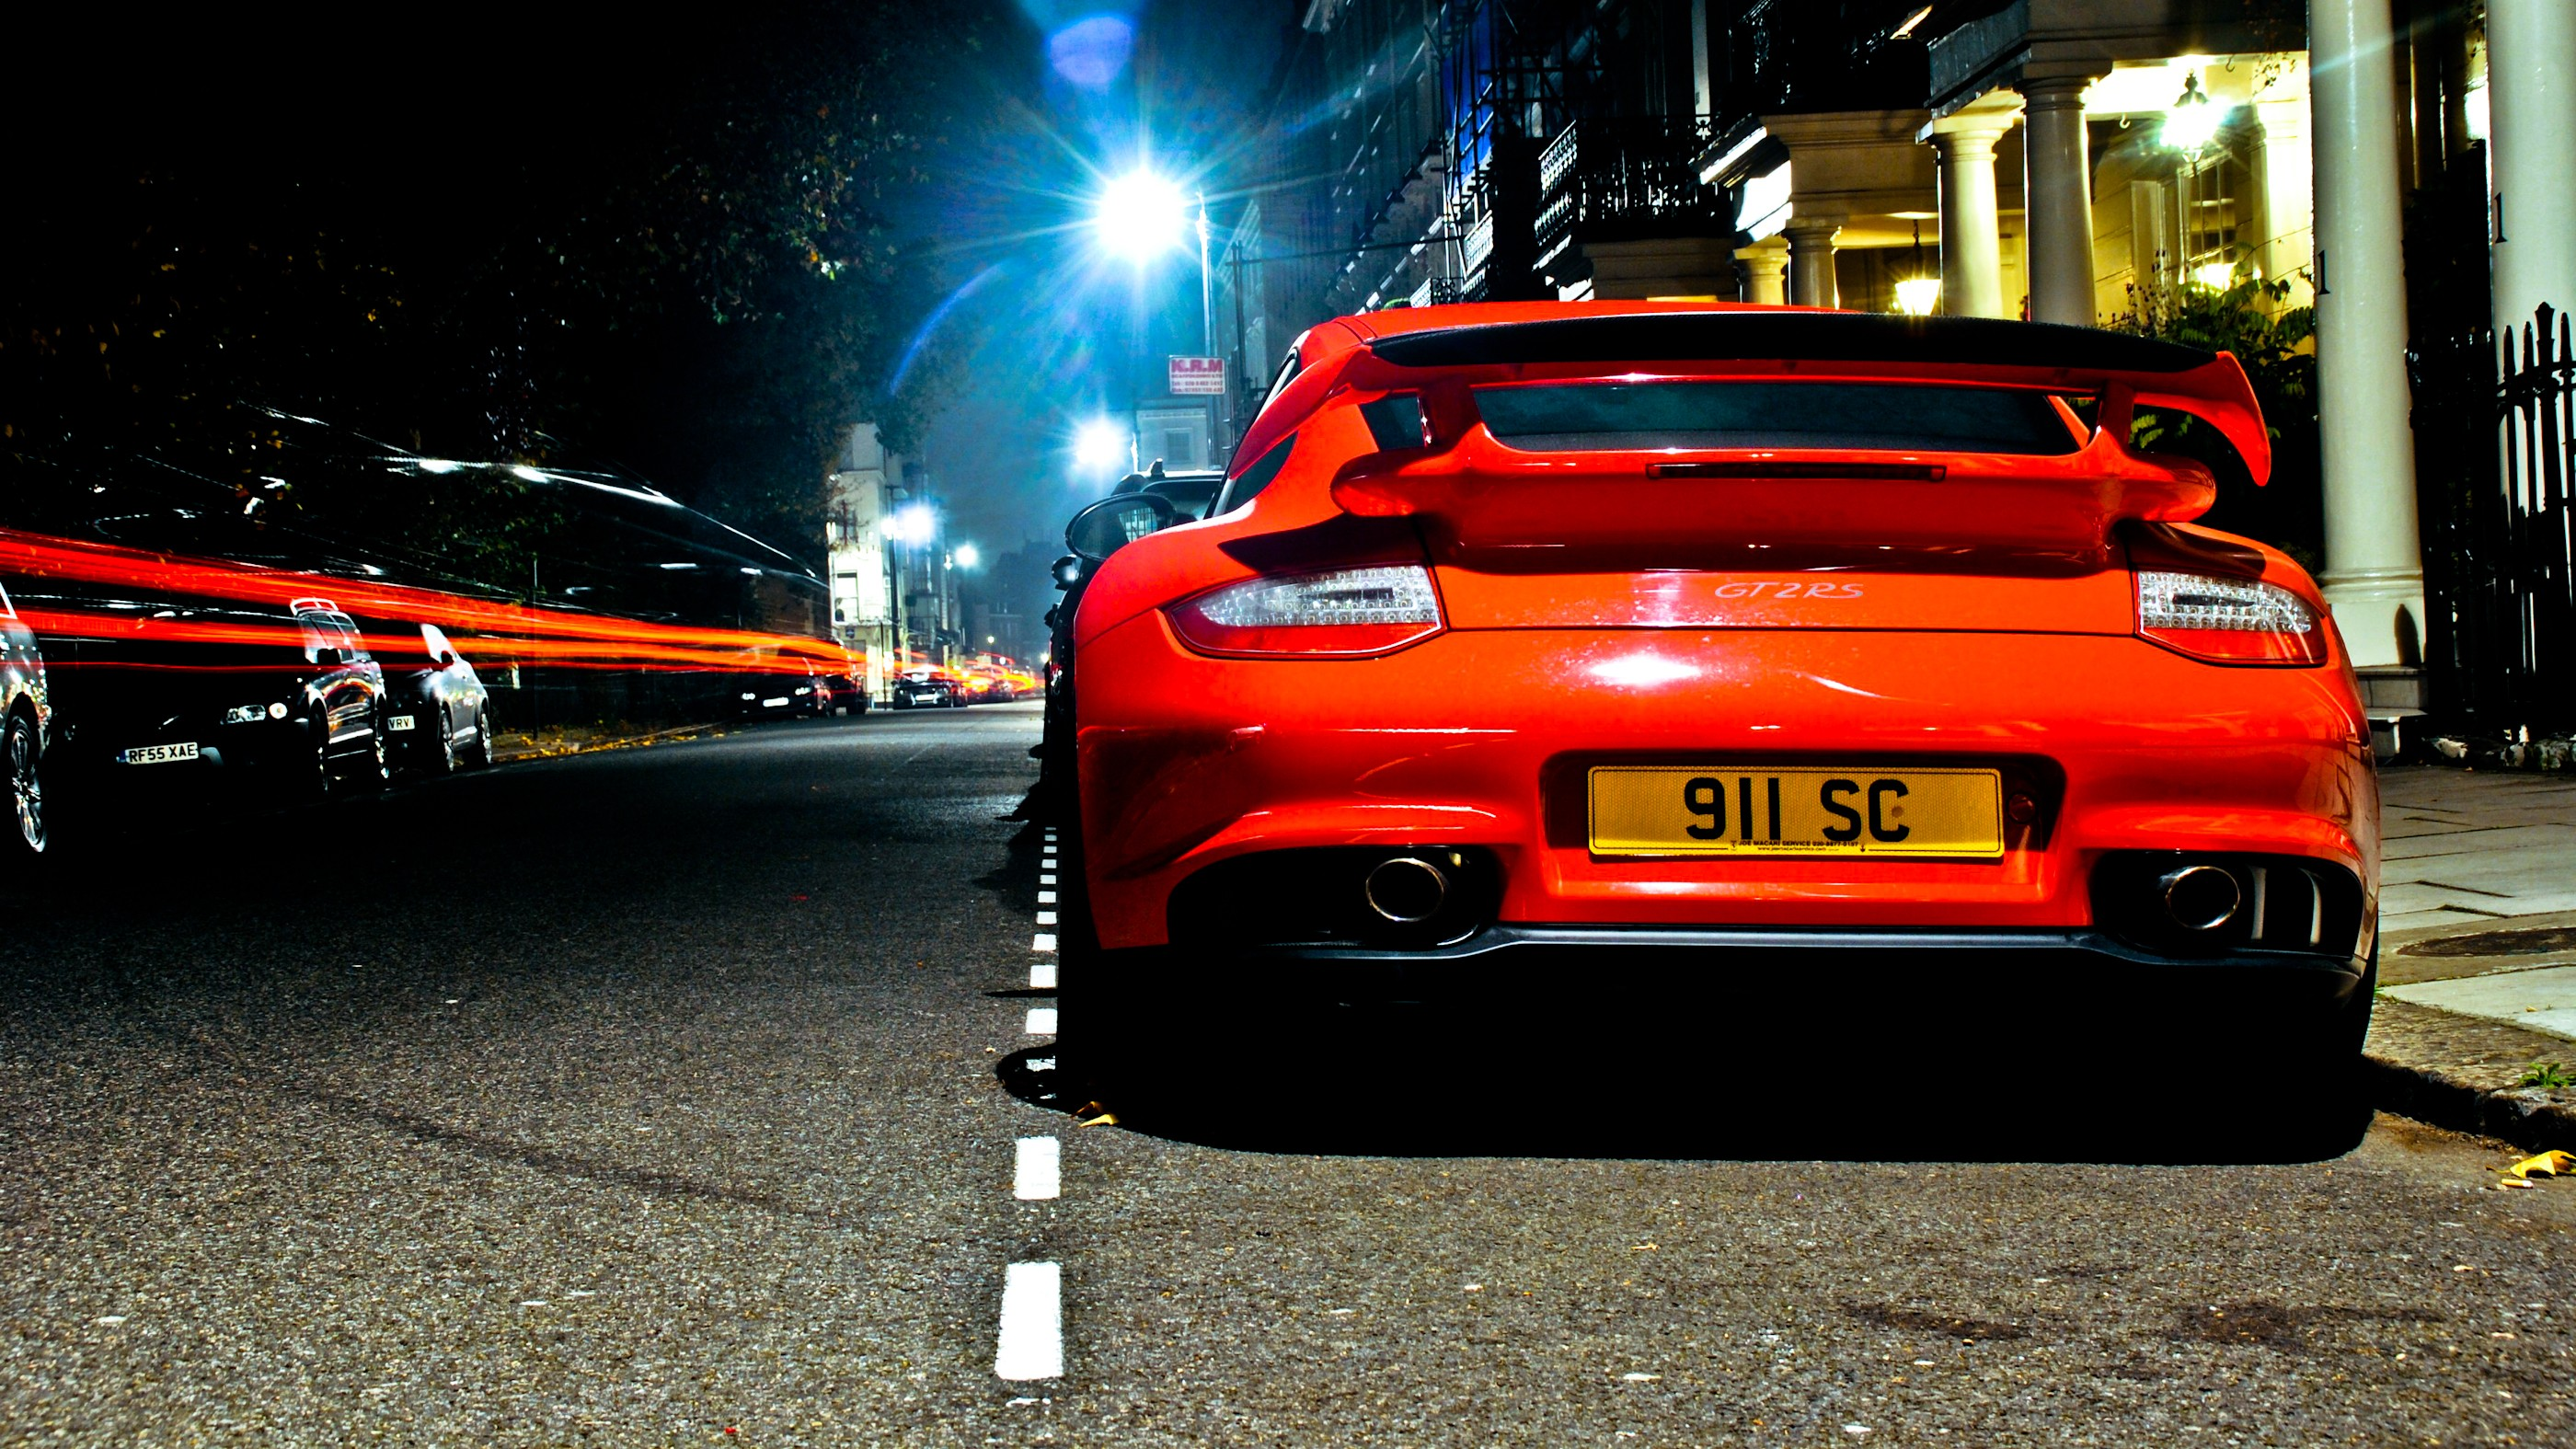 Porsche_911_GT2_RS Cozy Porsche 911 Gt2 Rs Wallpaper Cars Trend